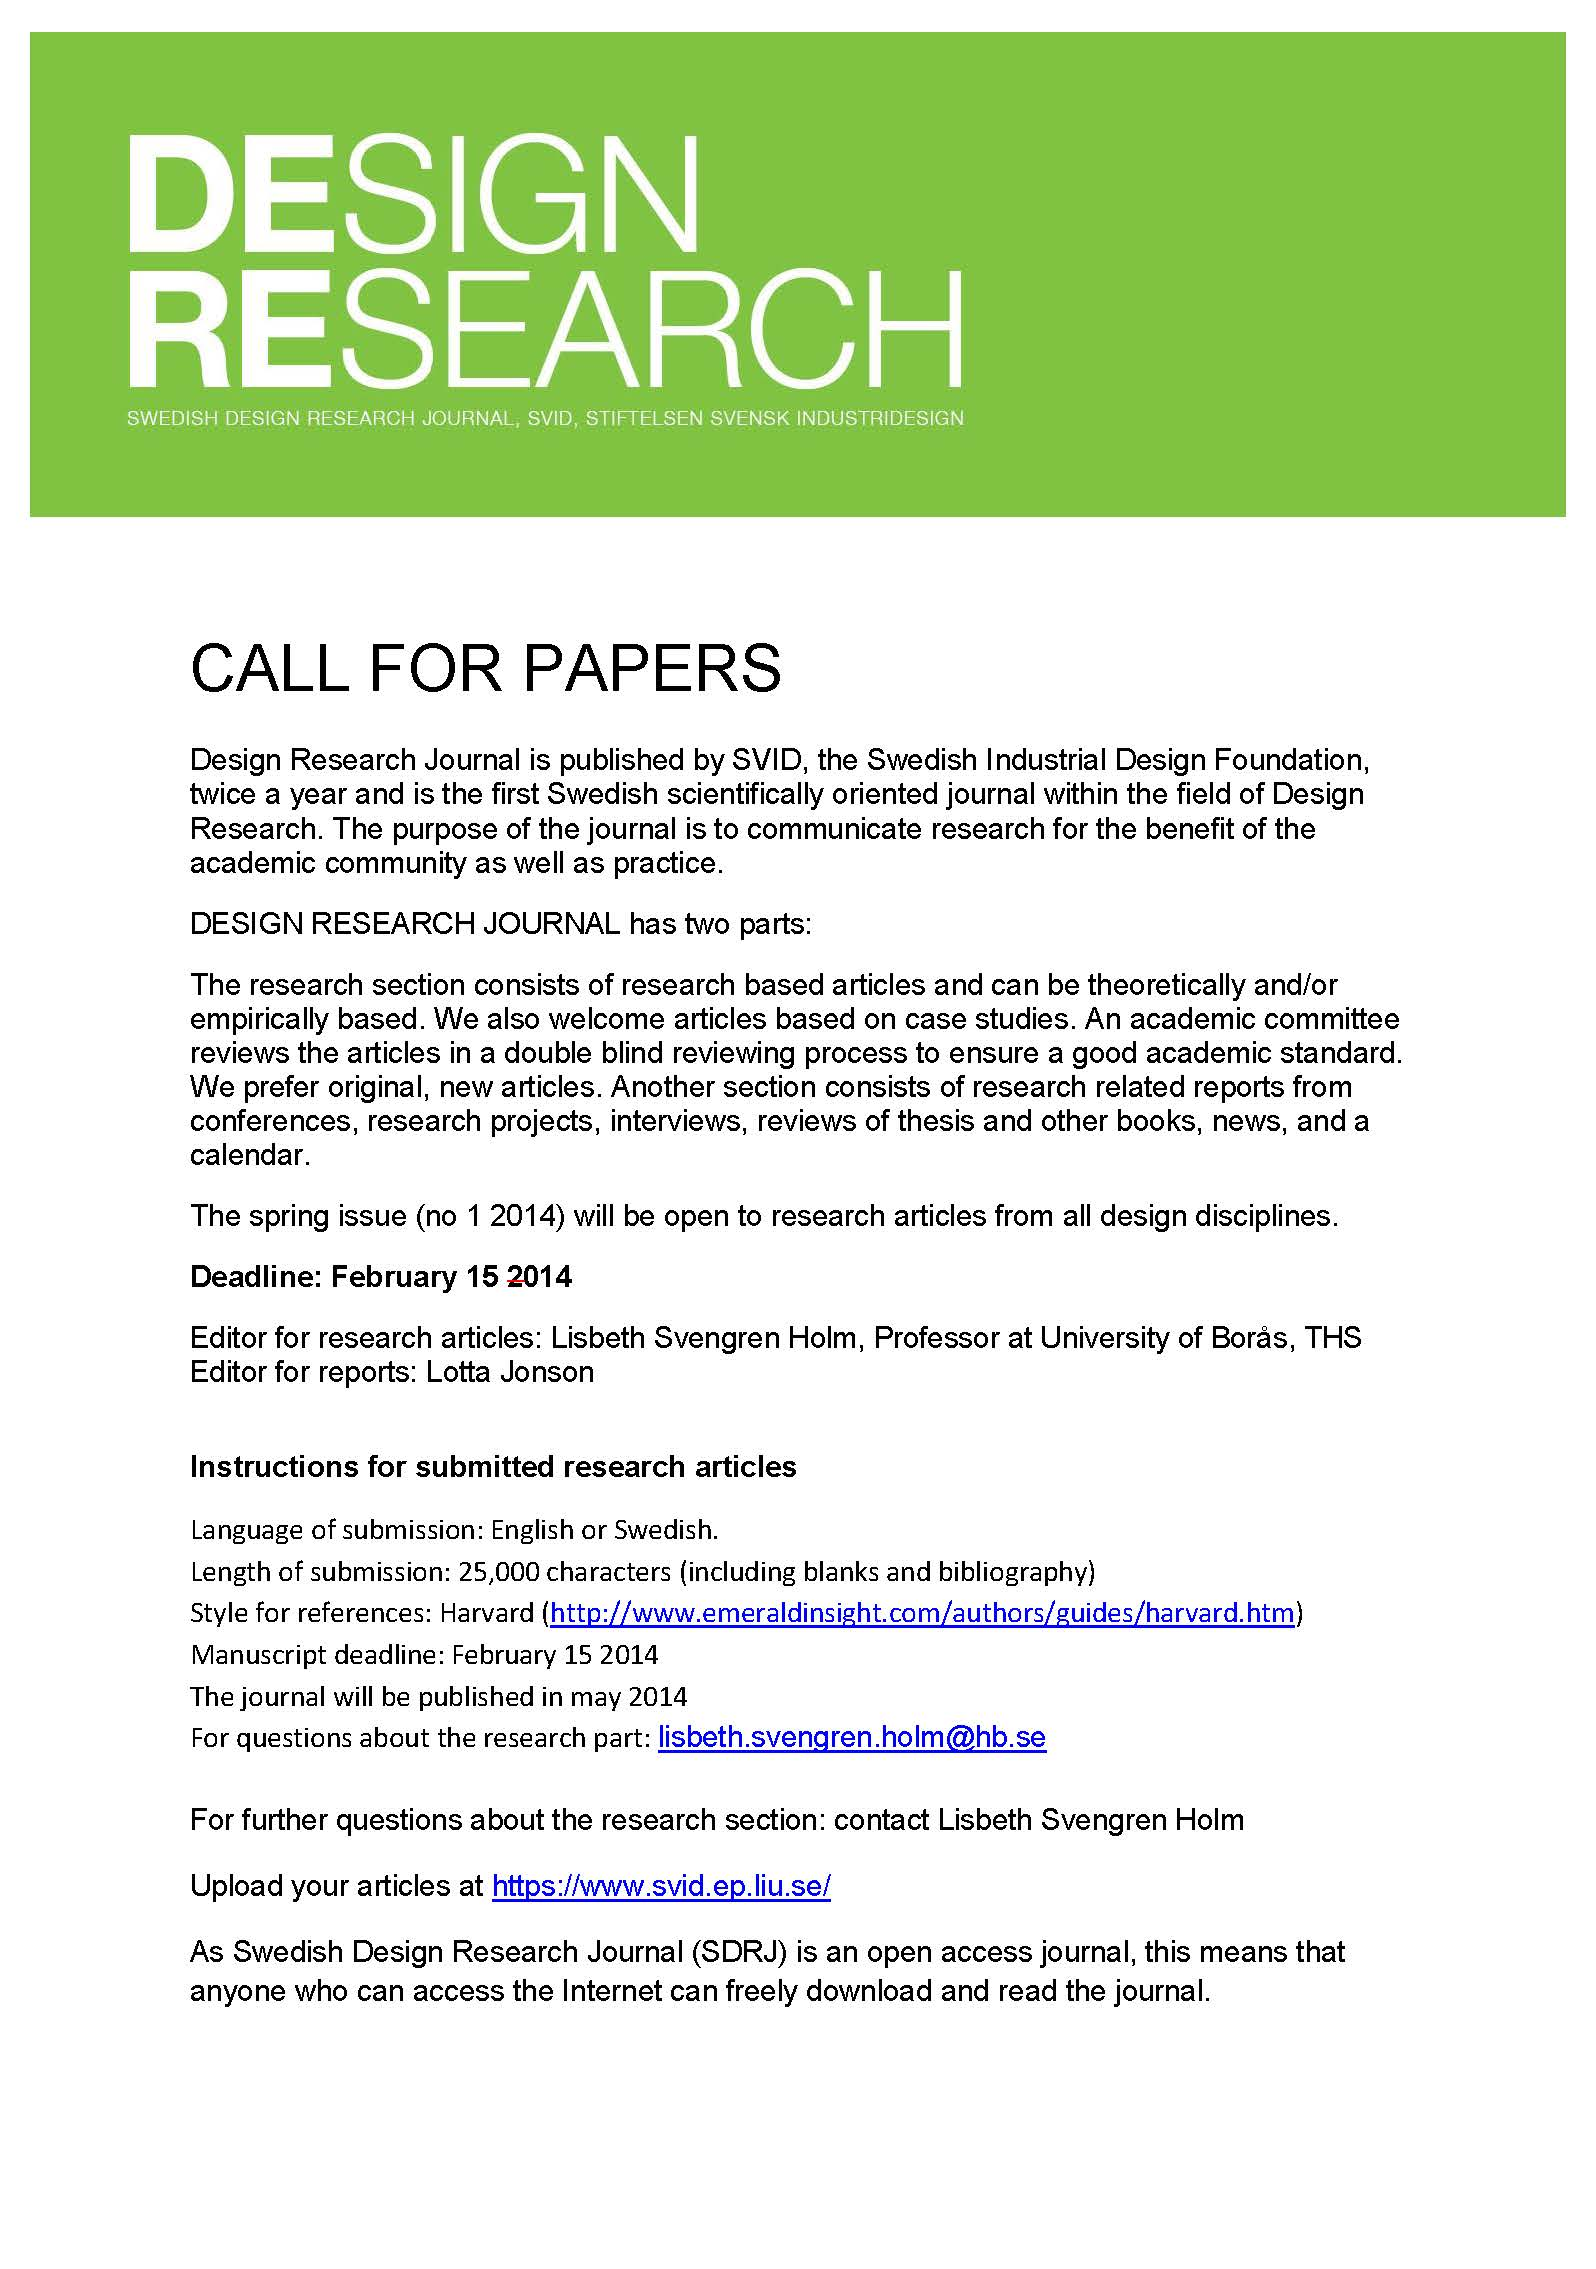 007 Call For Papers Nr 1 2014 Research Paper Stupendous Generator Thesis Download Full